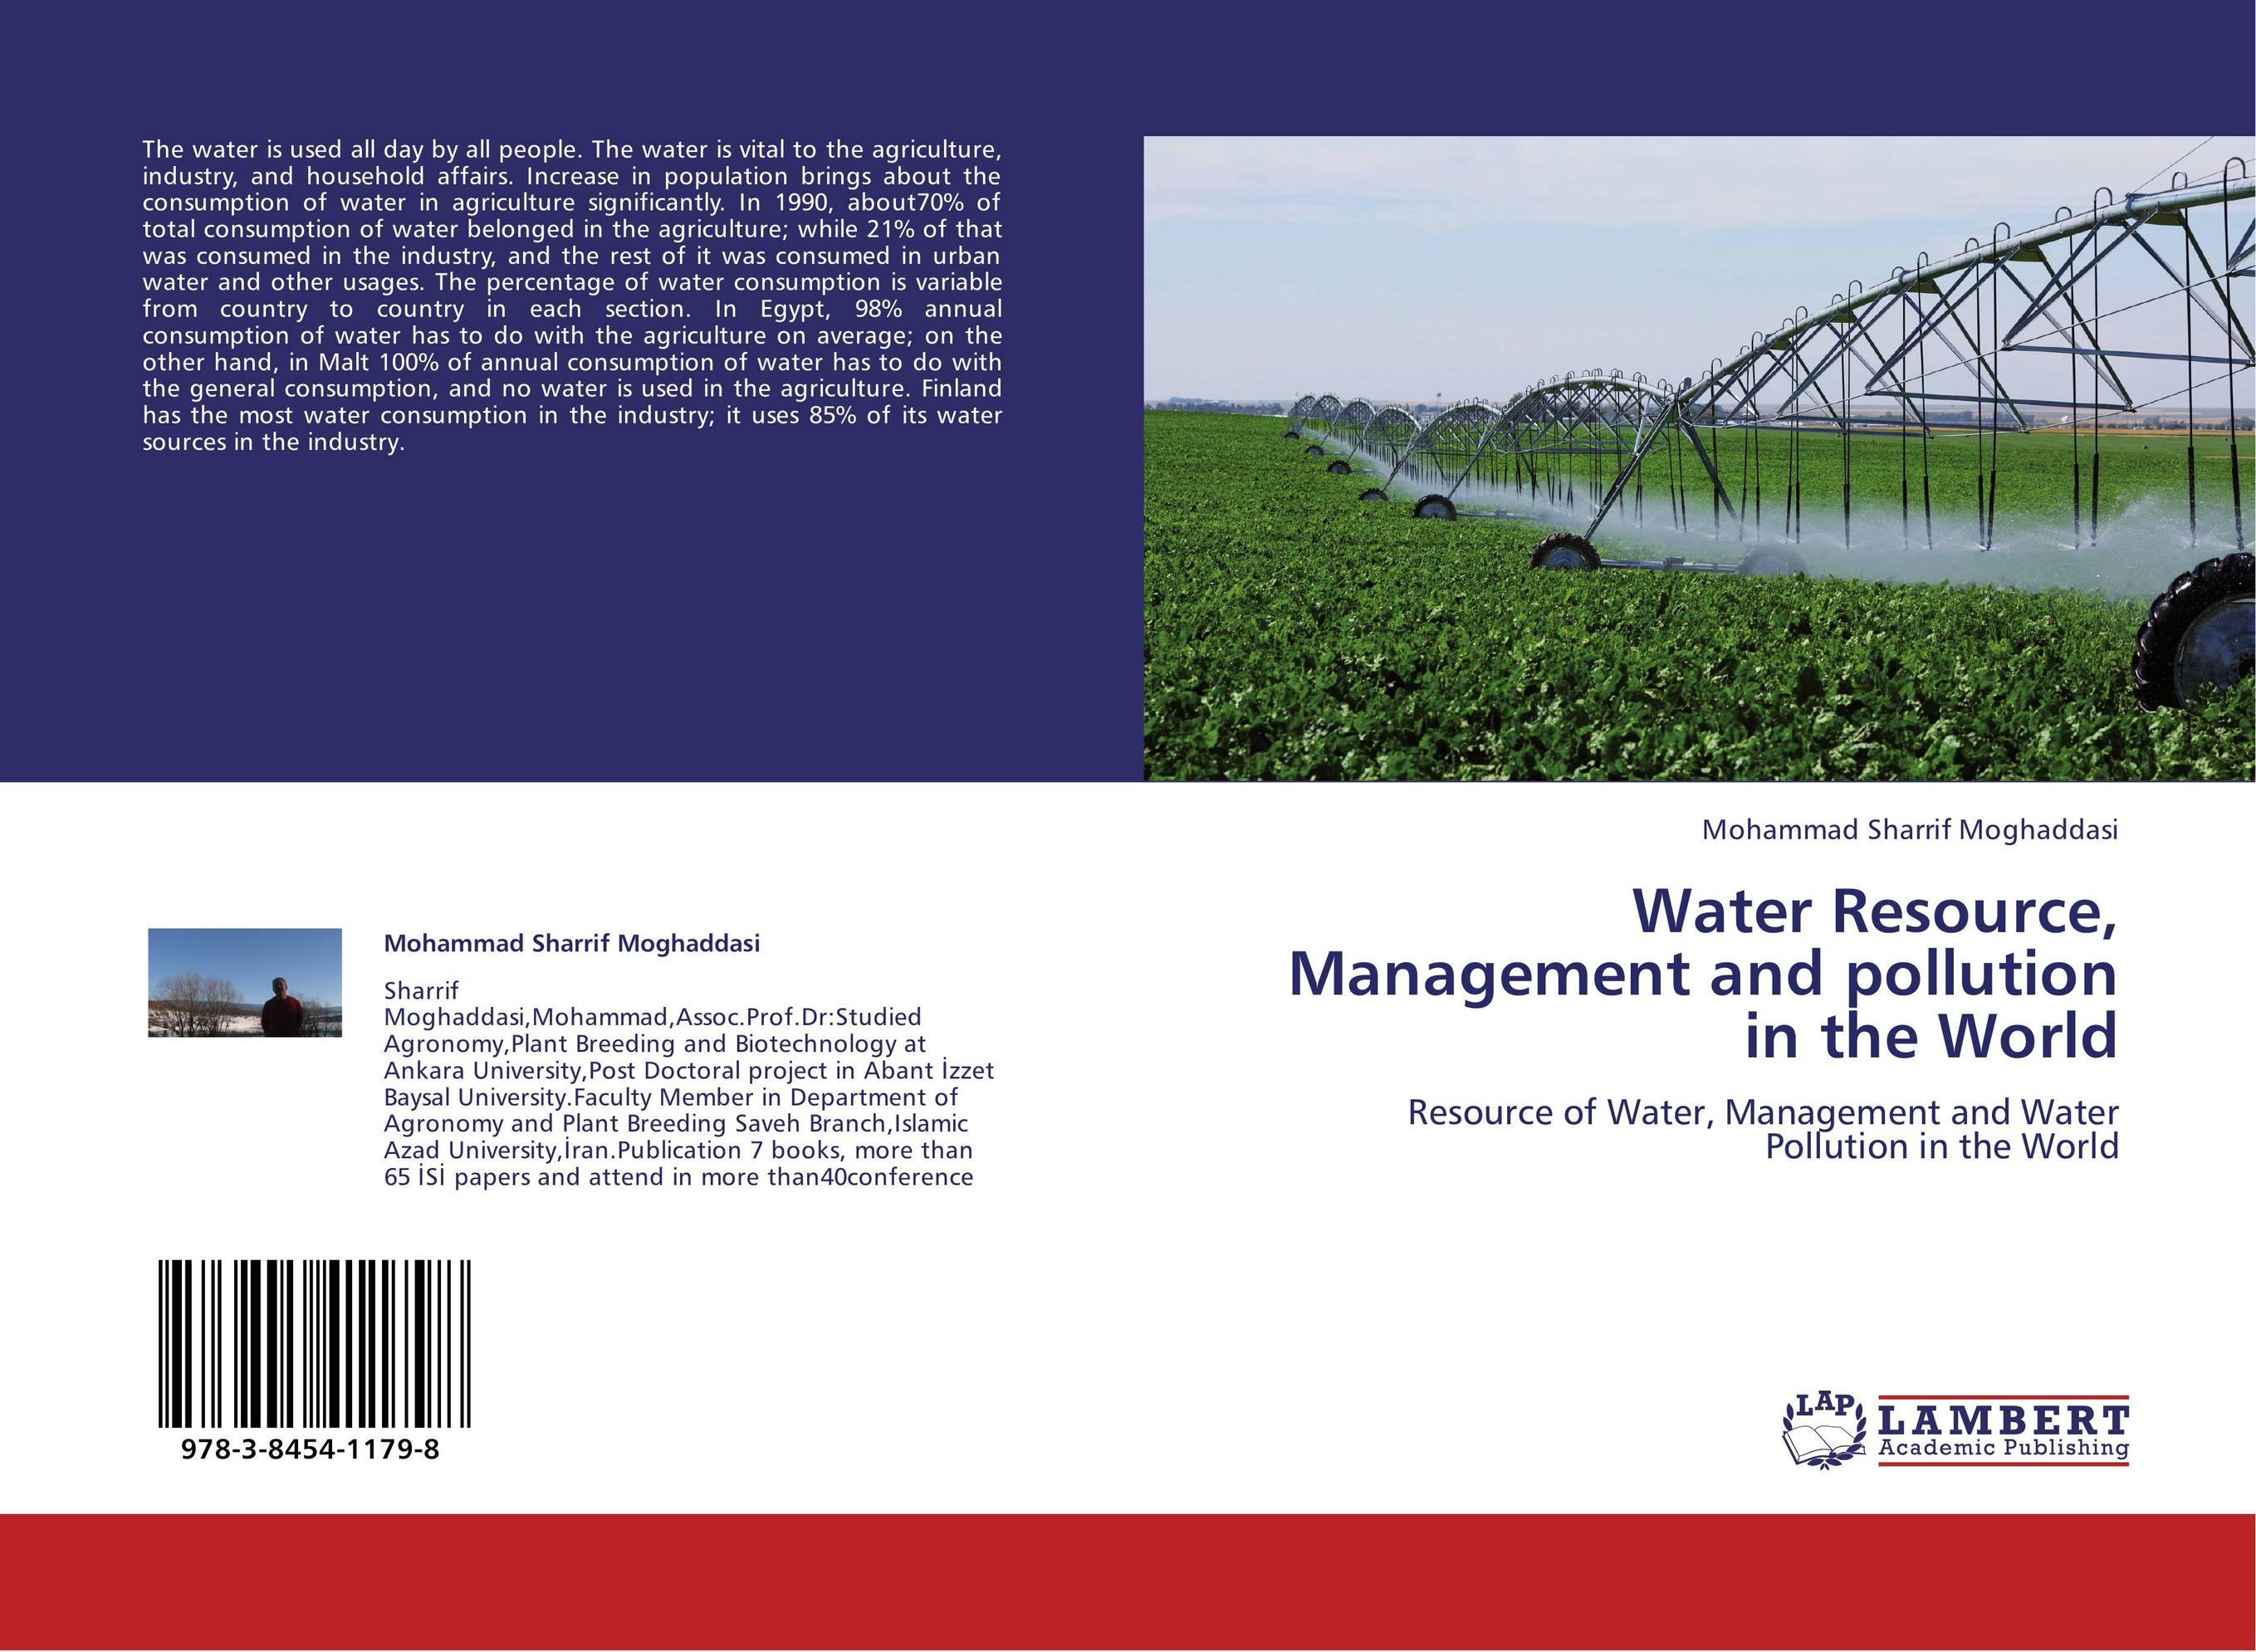 water resource managment Water resources management whether evaluating water availability for your project's needs or assessing potential project impacts on surface water or groundwater, hatfield consultants provides cost effective solutions to characterize and monitor your water resources.